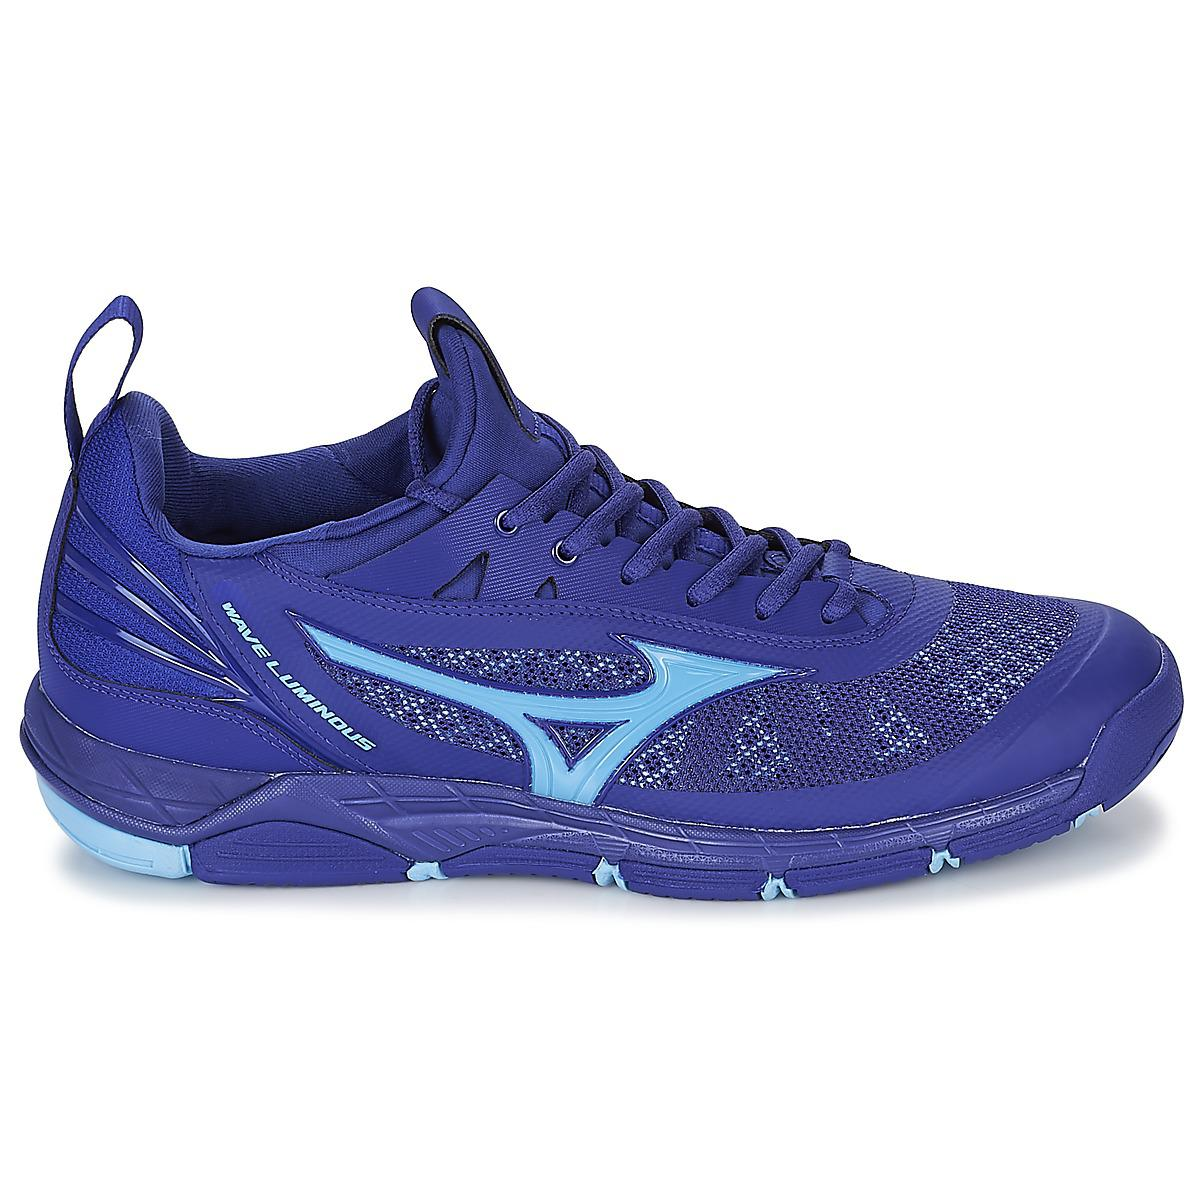 691dc7b30e320 Mizuno Wave Luminous Indoor Sports Trainers (shoes) in Blue for Men ...